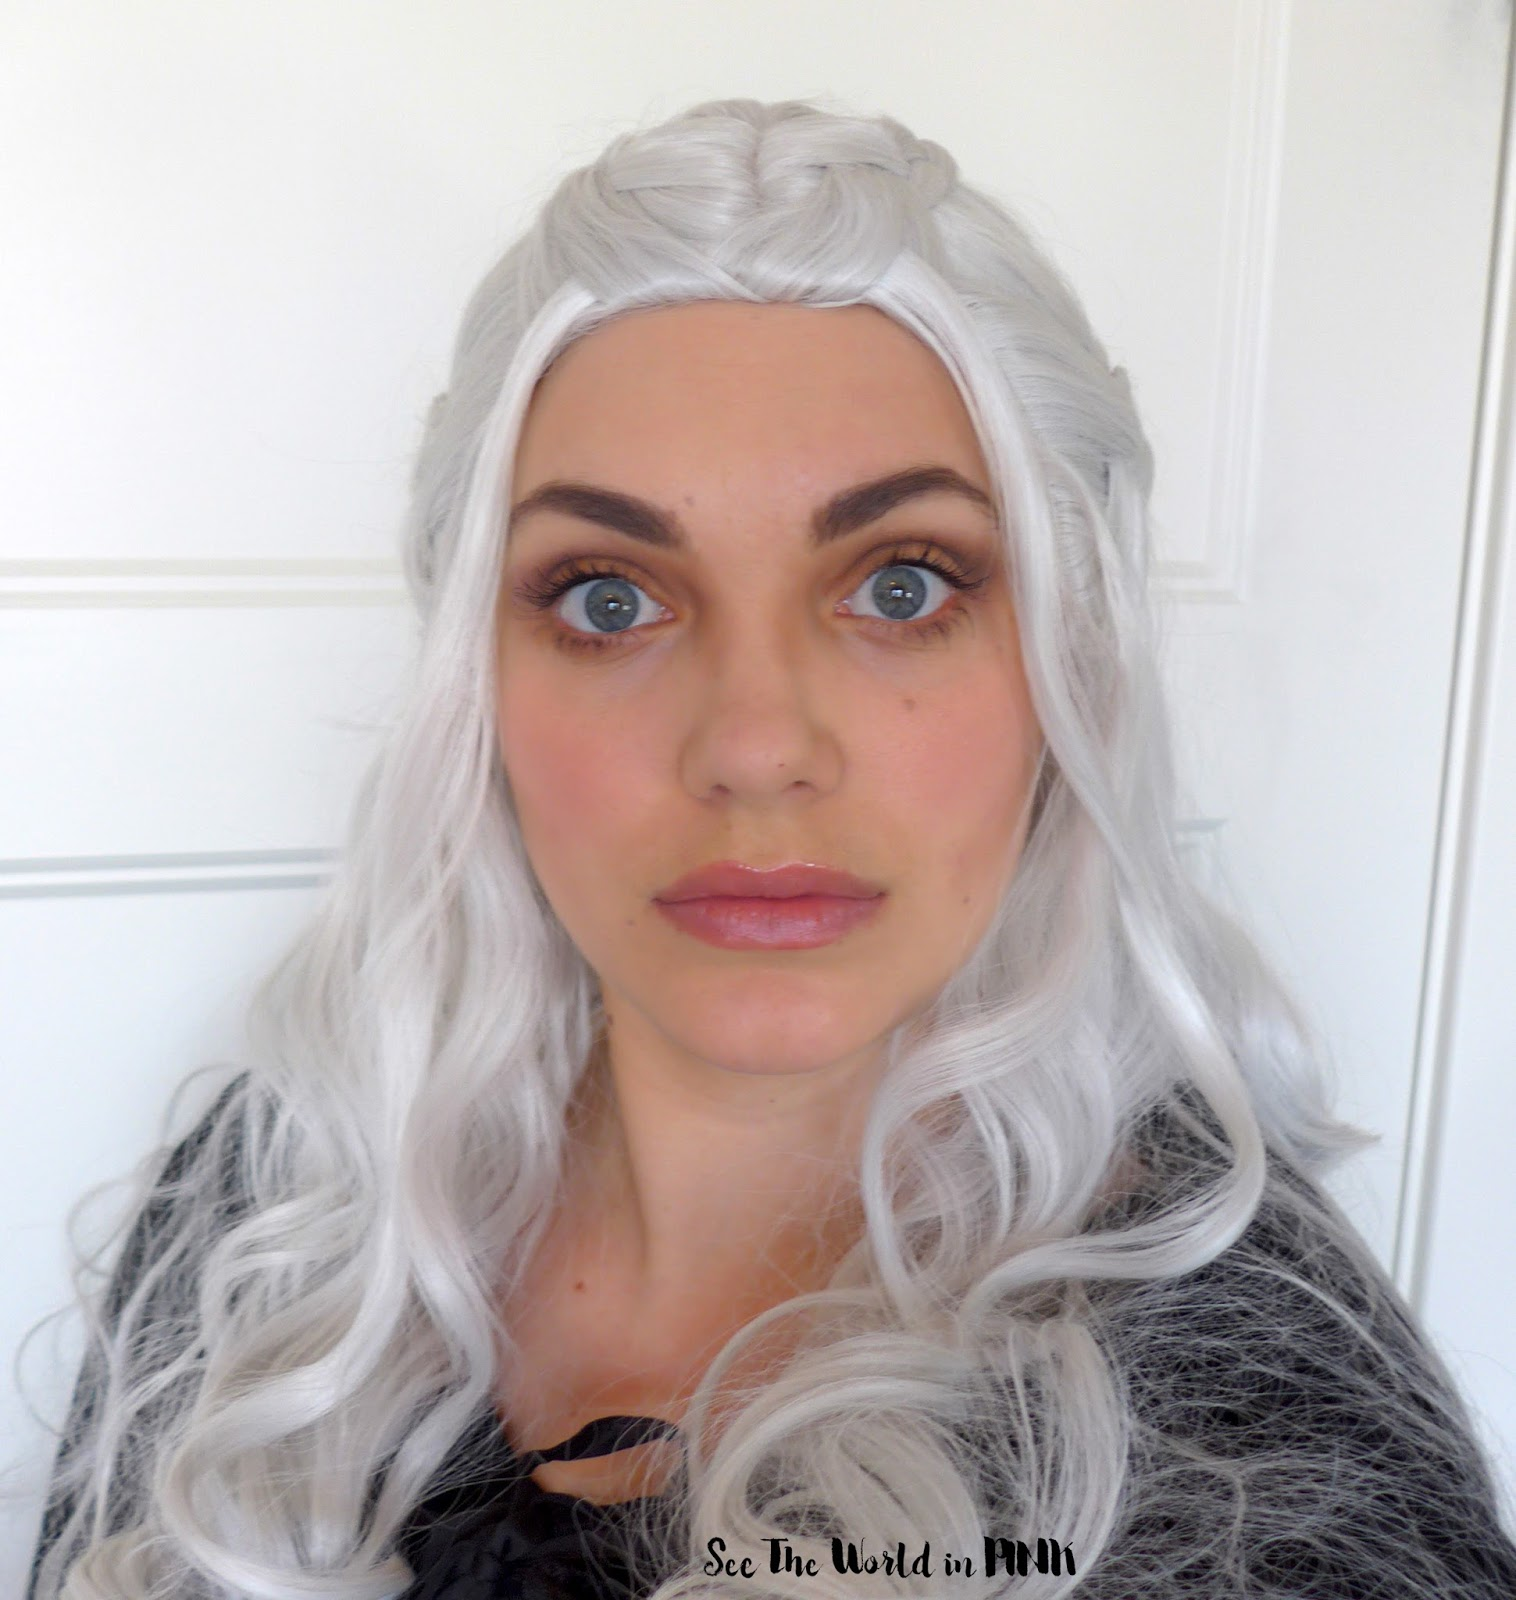 Halloween Makeup - Danaerys Targaryen Mother of Dragons!